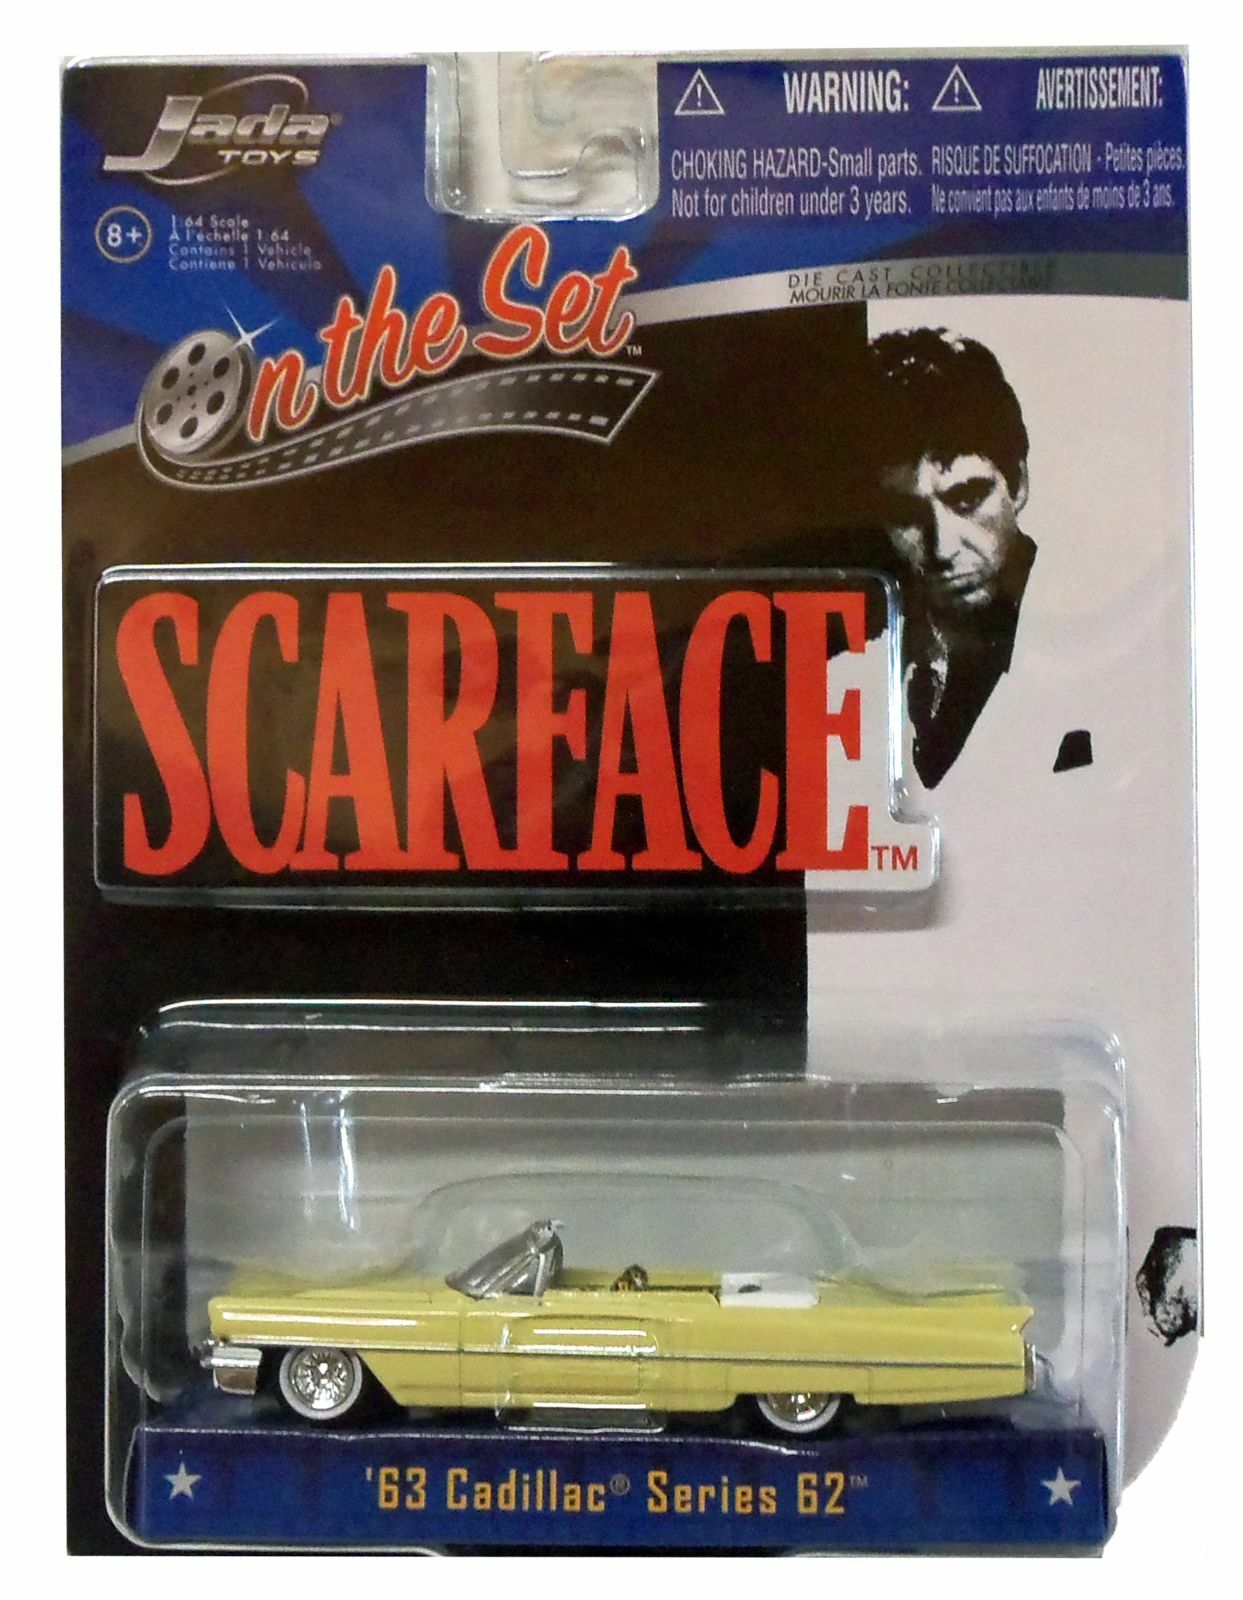 Bad Guy Set It Off Chords Scarface 1963 Cadillac Series 62 Convertible Diecast Car